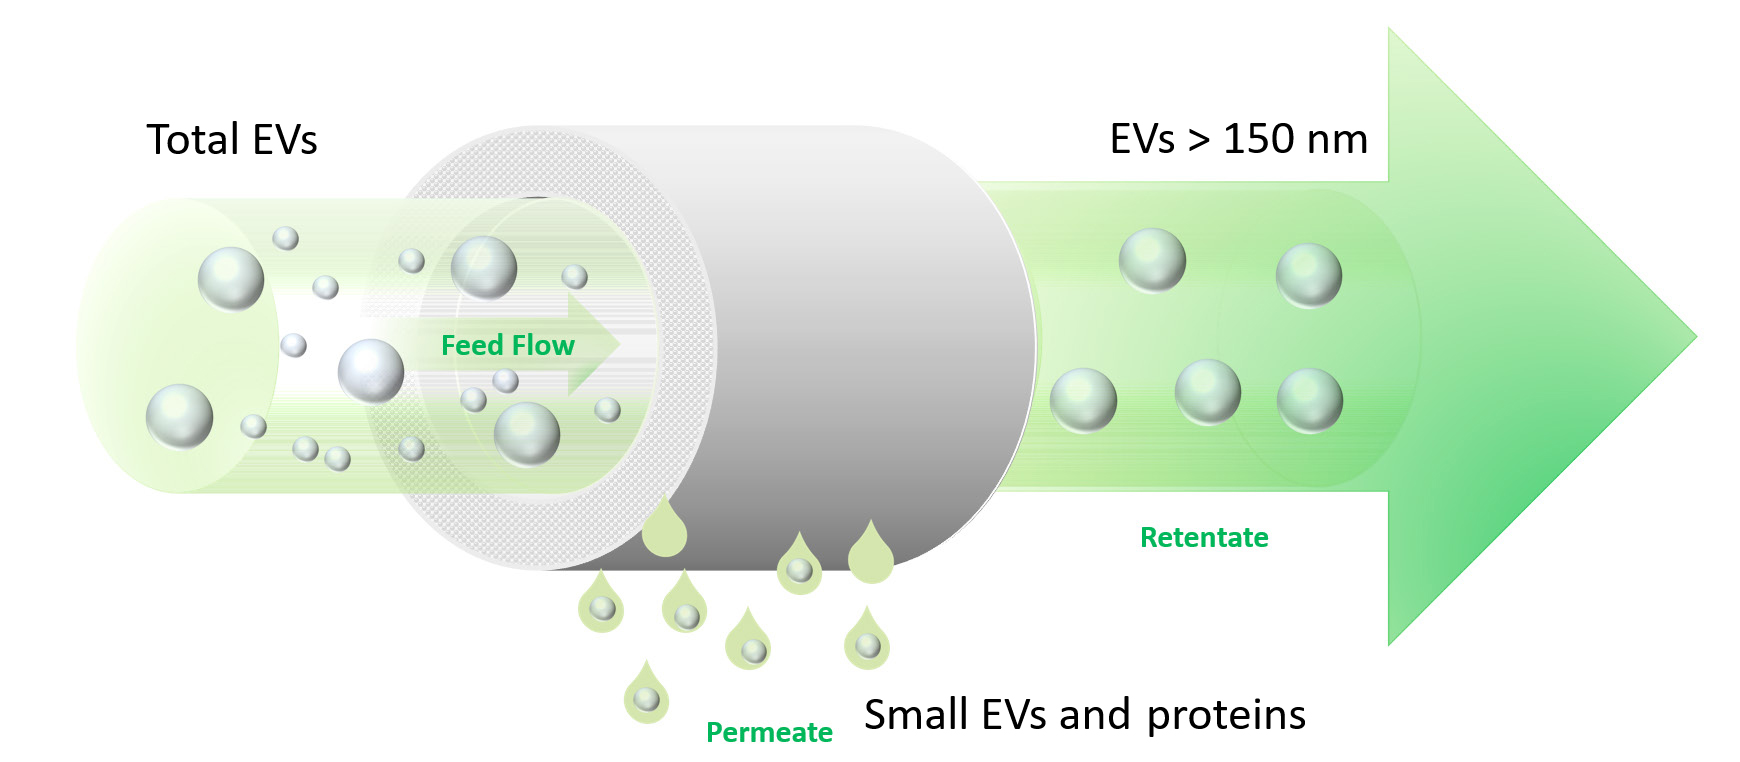 TFF-MV: Separation, puriifcation and concentration of large EVs